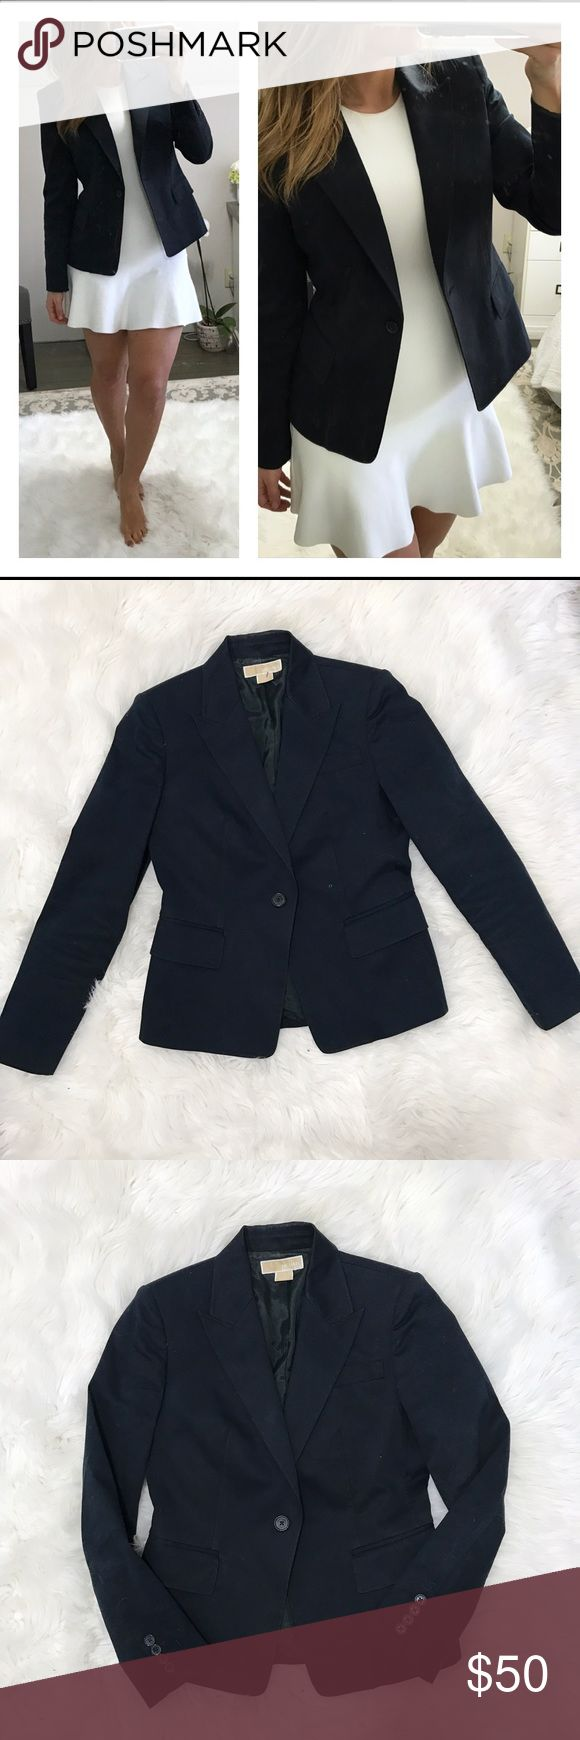 Michael Kors - navy blazer - cotton - size 6 Michael Kors - navy blazer - cotton so it's great for spray my layering - size 6 - like new (just picked up a few fuzzies from my rug that will lint roll right off) Michael Kors Jackets & Coats Blazers